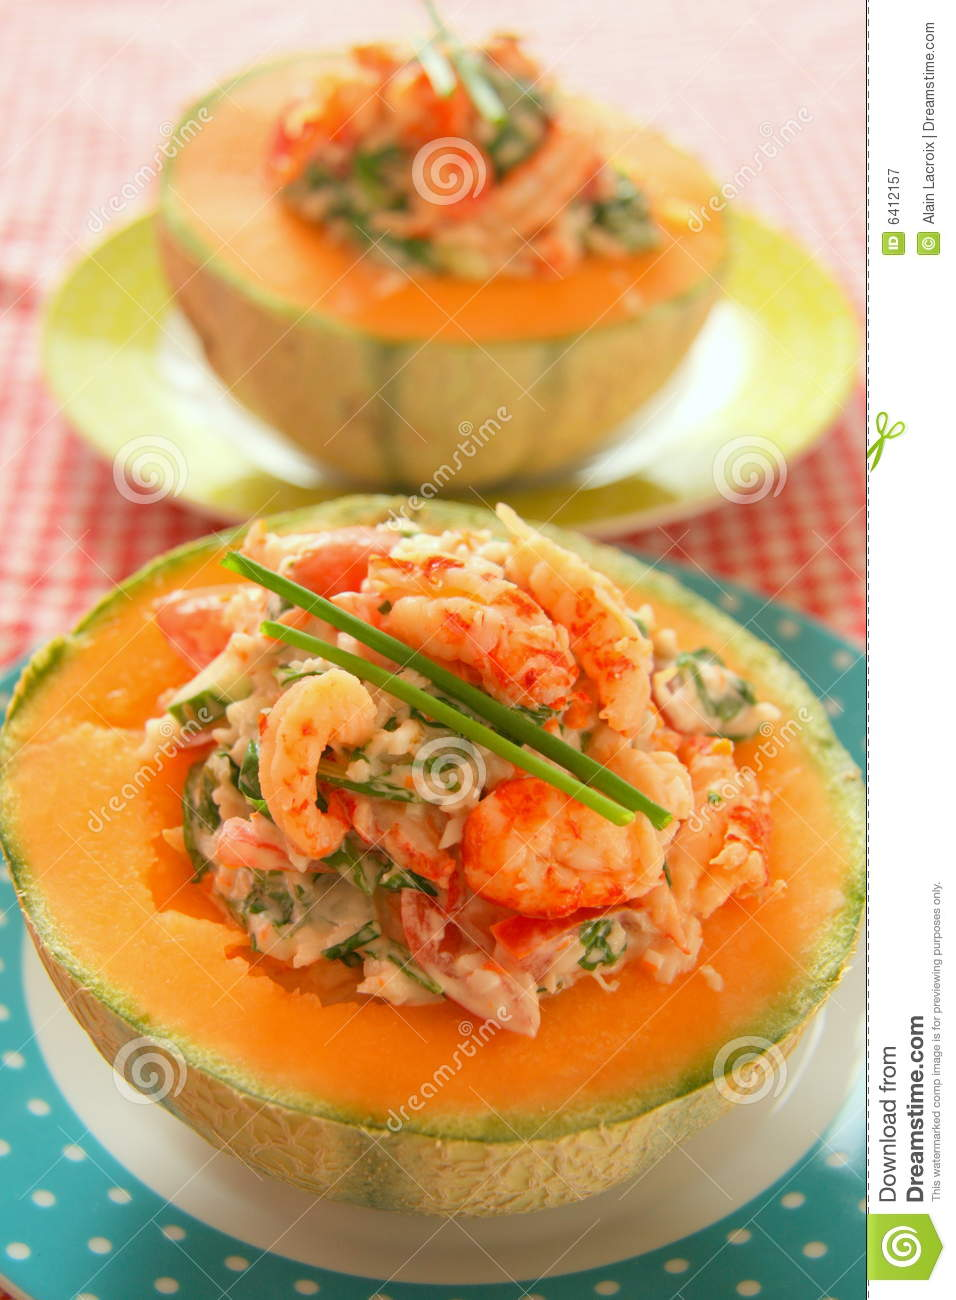 Melon with seafood